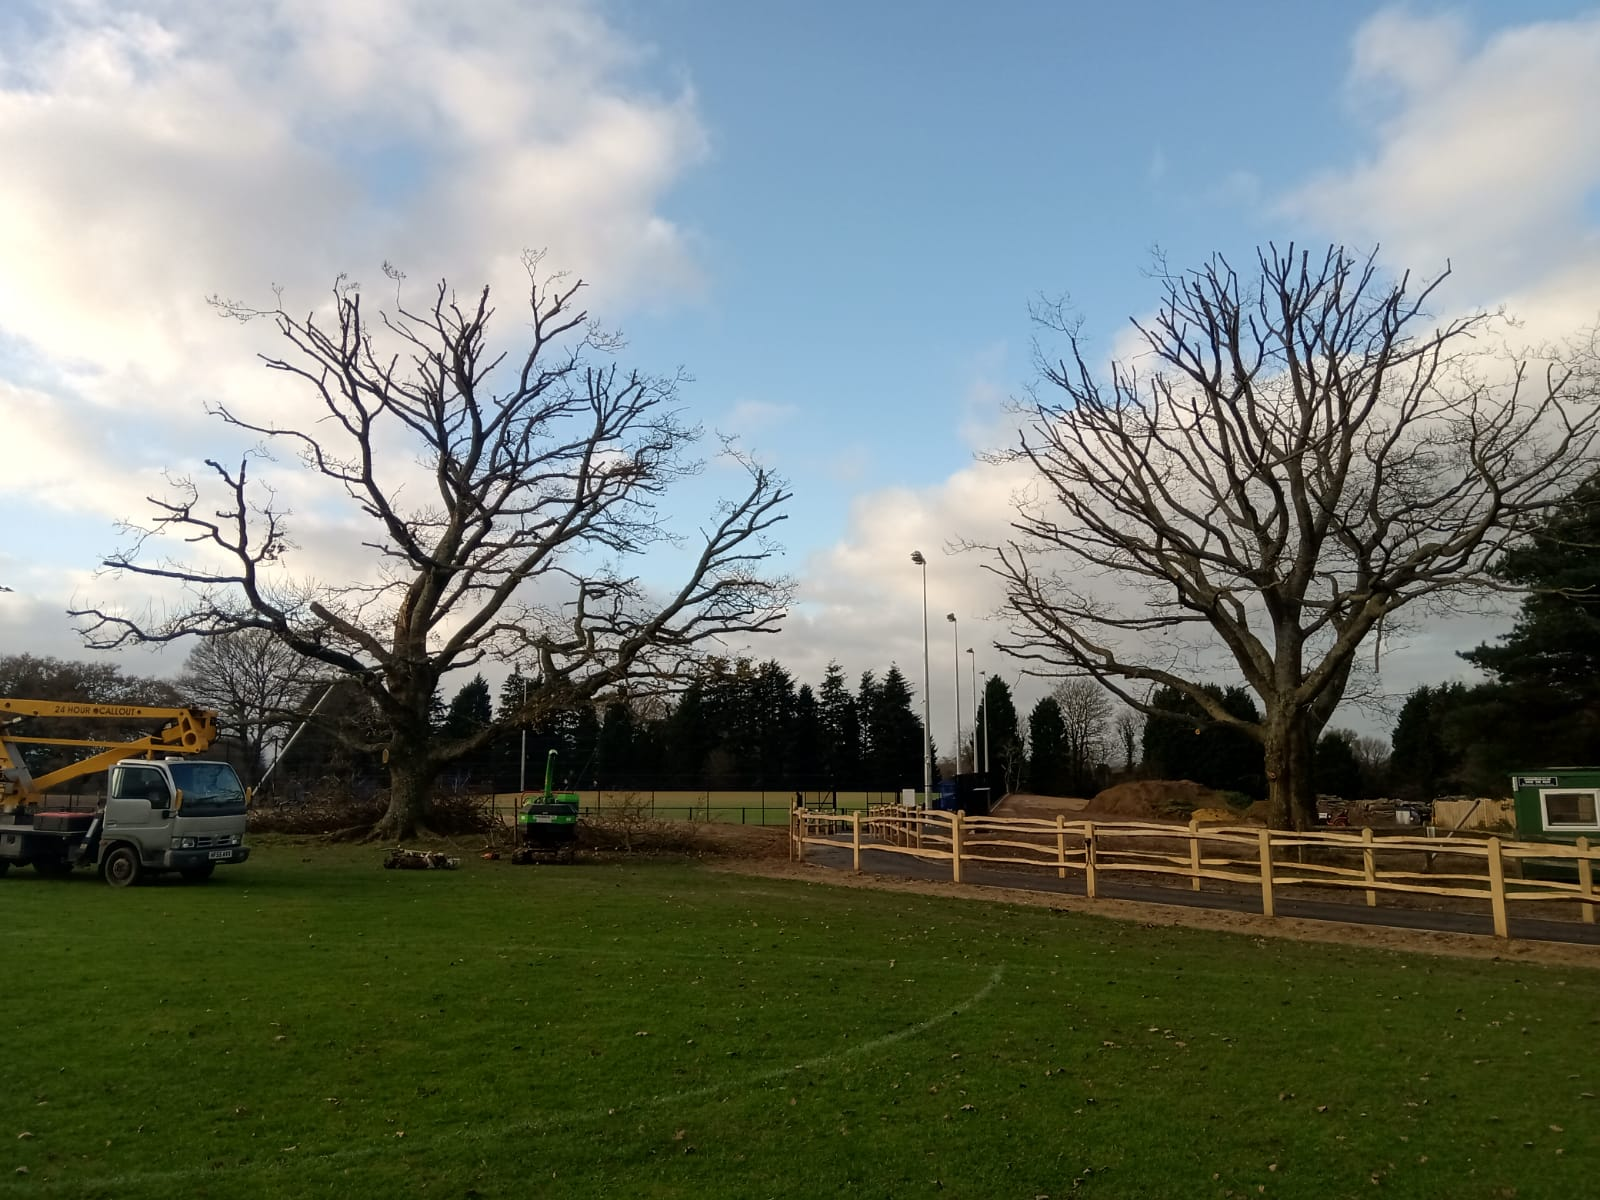 Trees Surrounded by Fencing